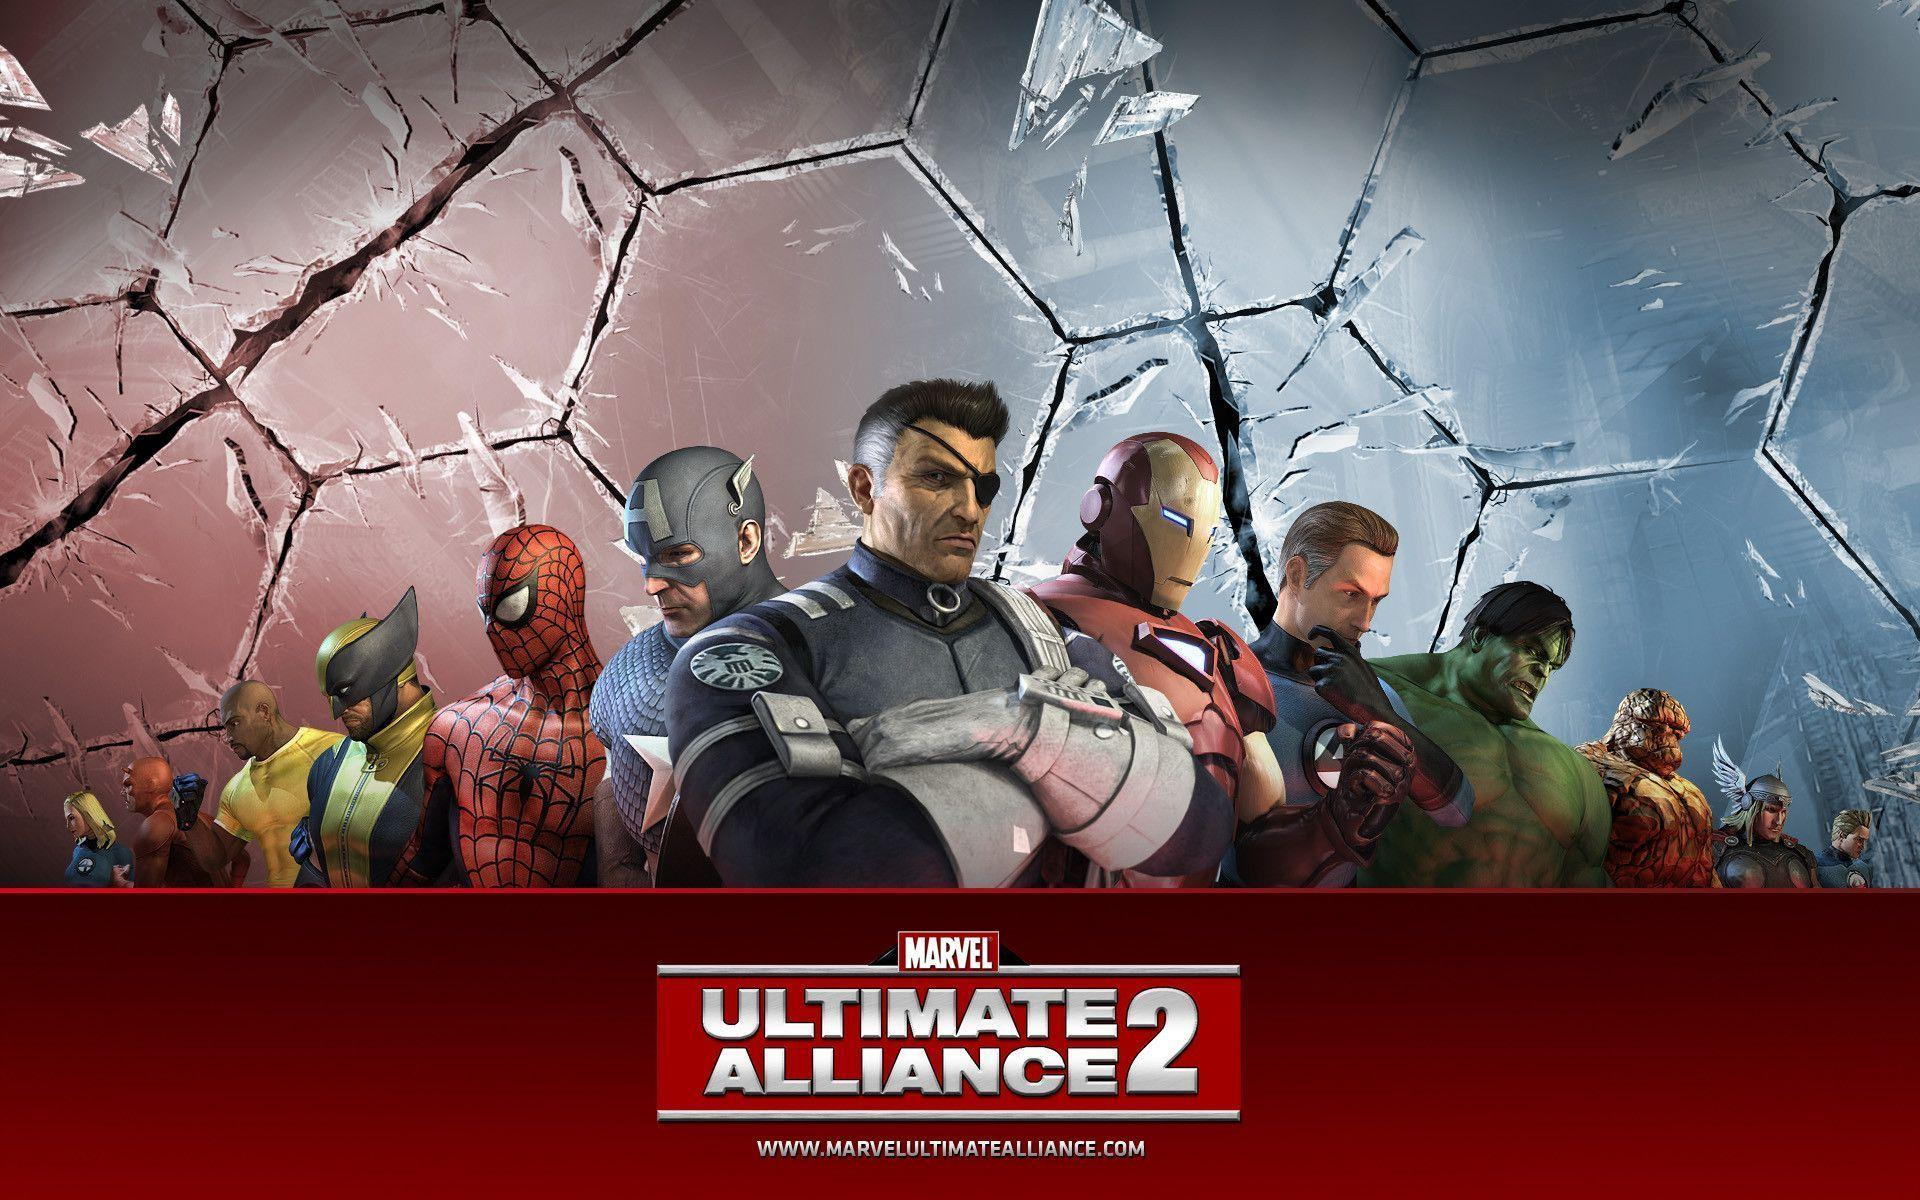 wallpaper alliance ultimate - photo #6